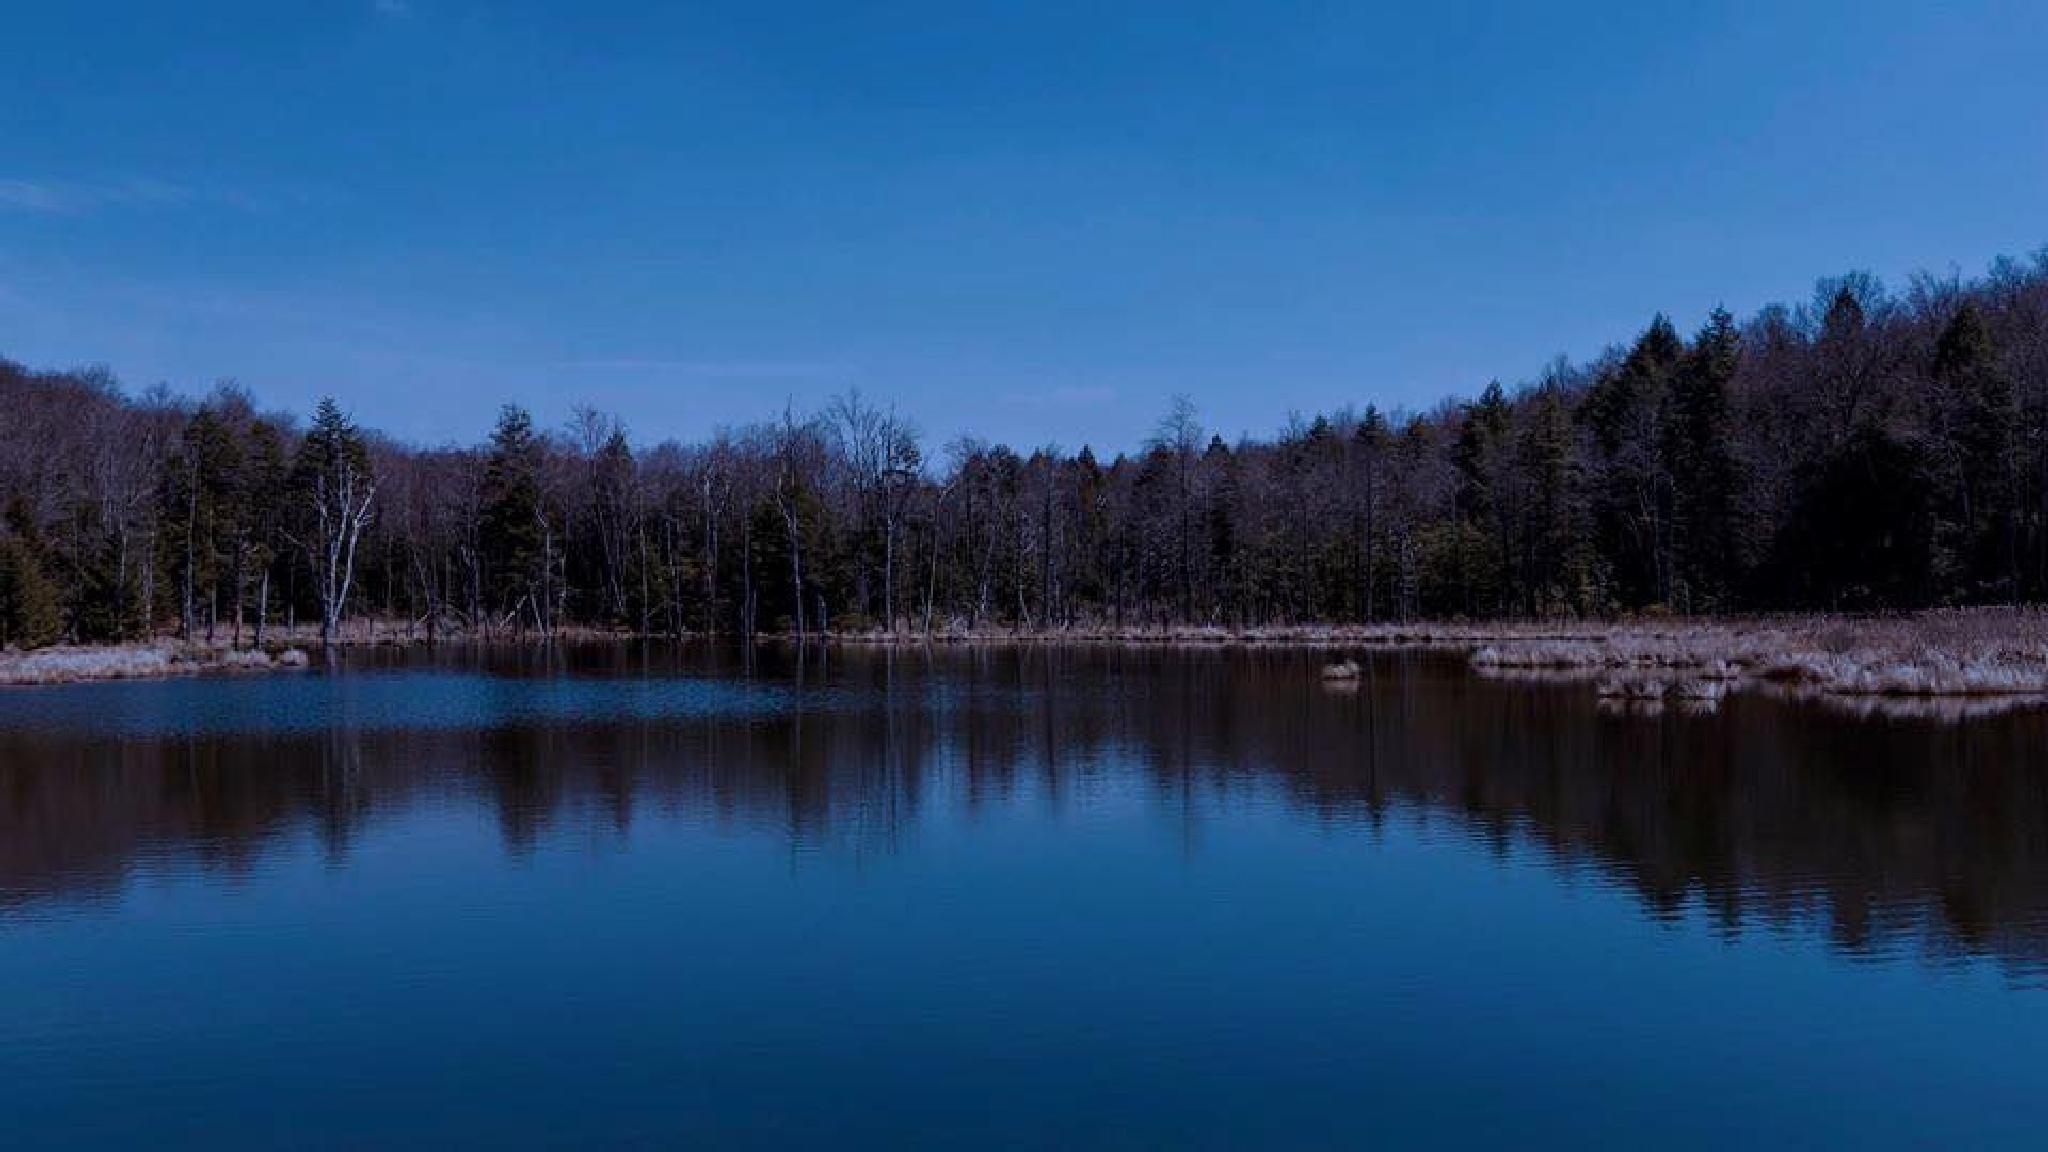 The Lake, Part II by Lynette M. Feliciano-Justice